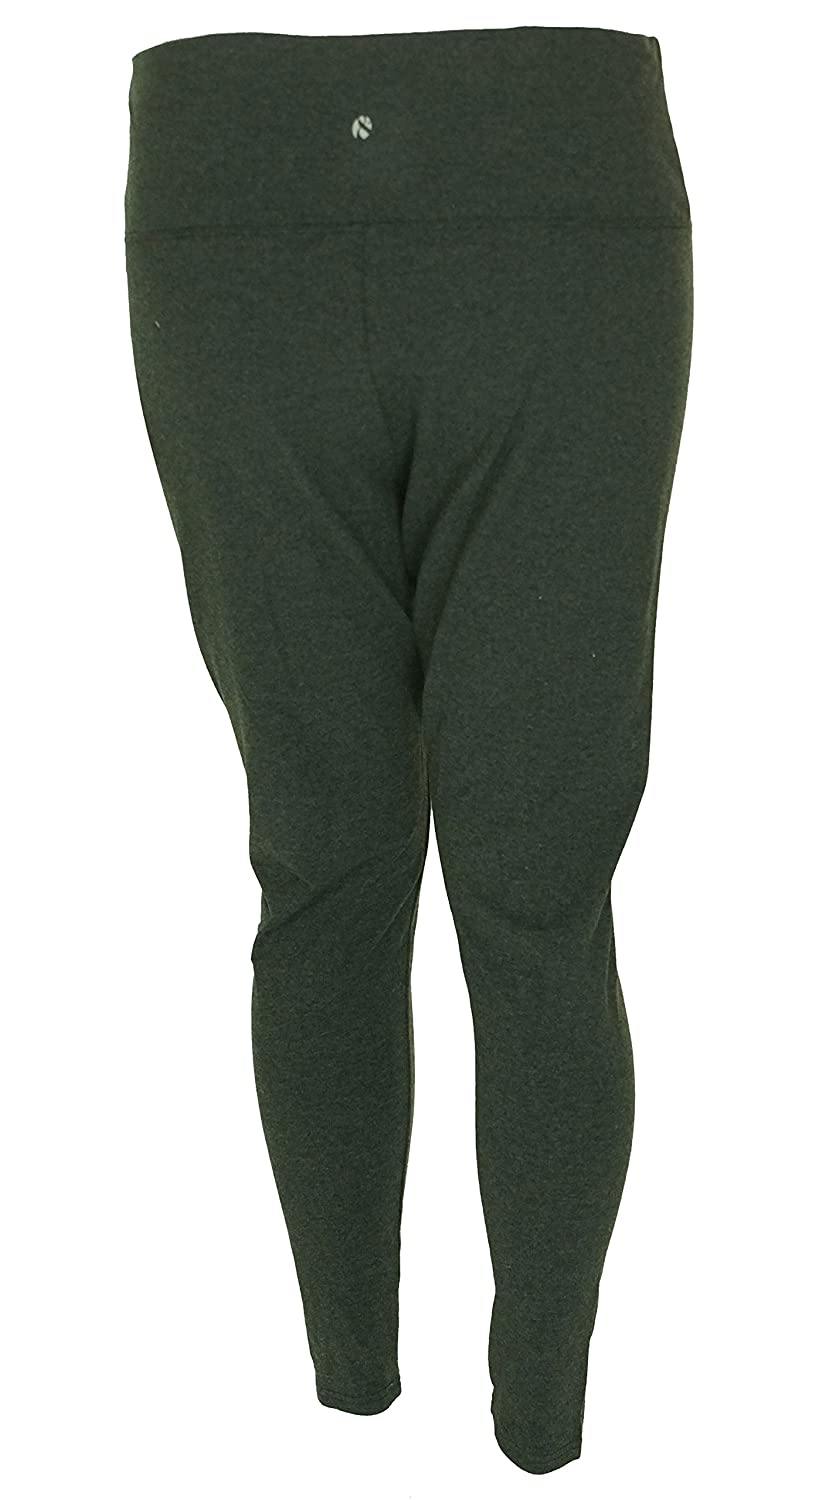 Style & Co. Charcoal Womens Plus Pull-On Legging Pants